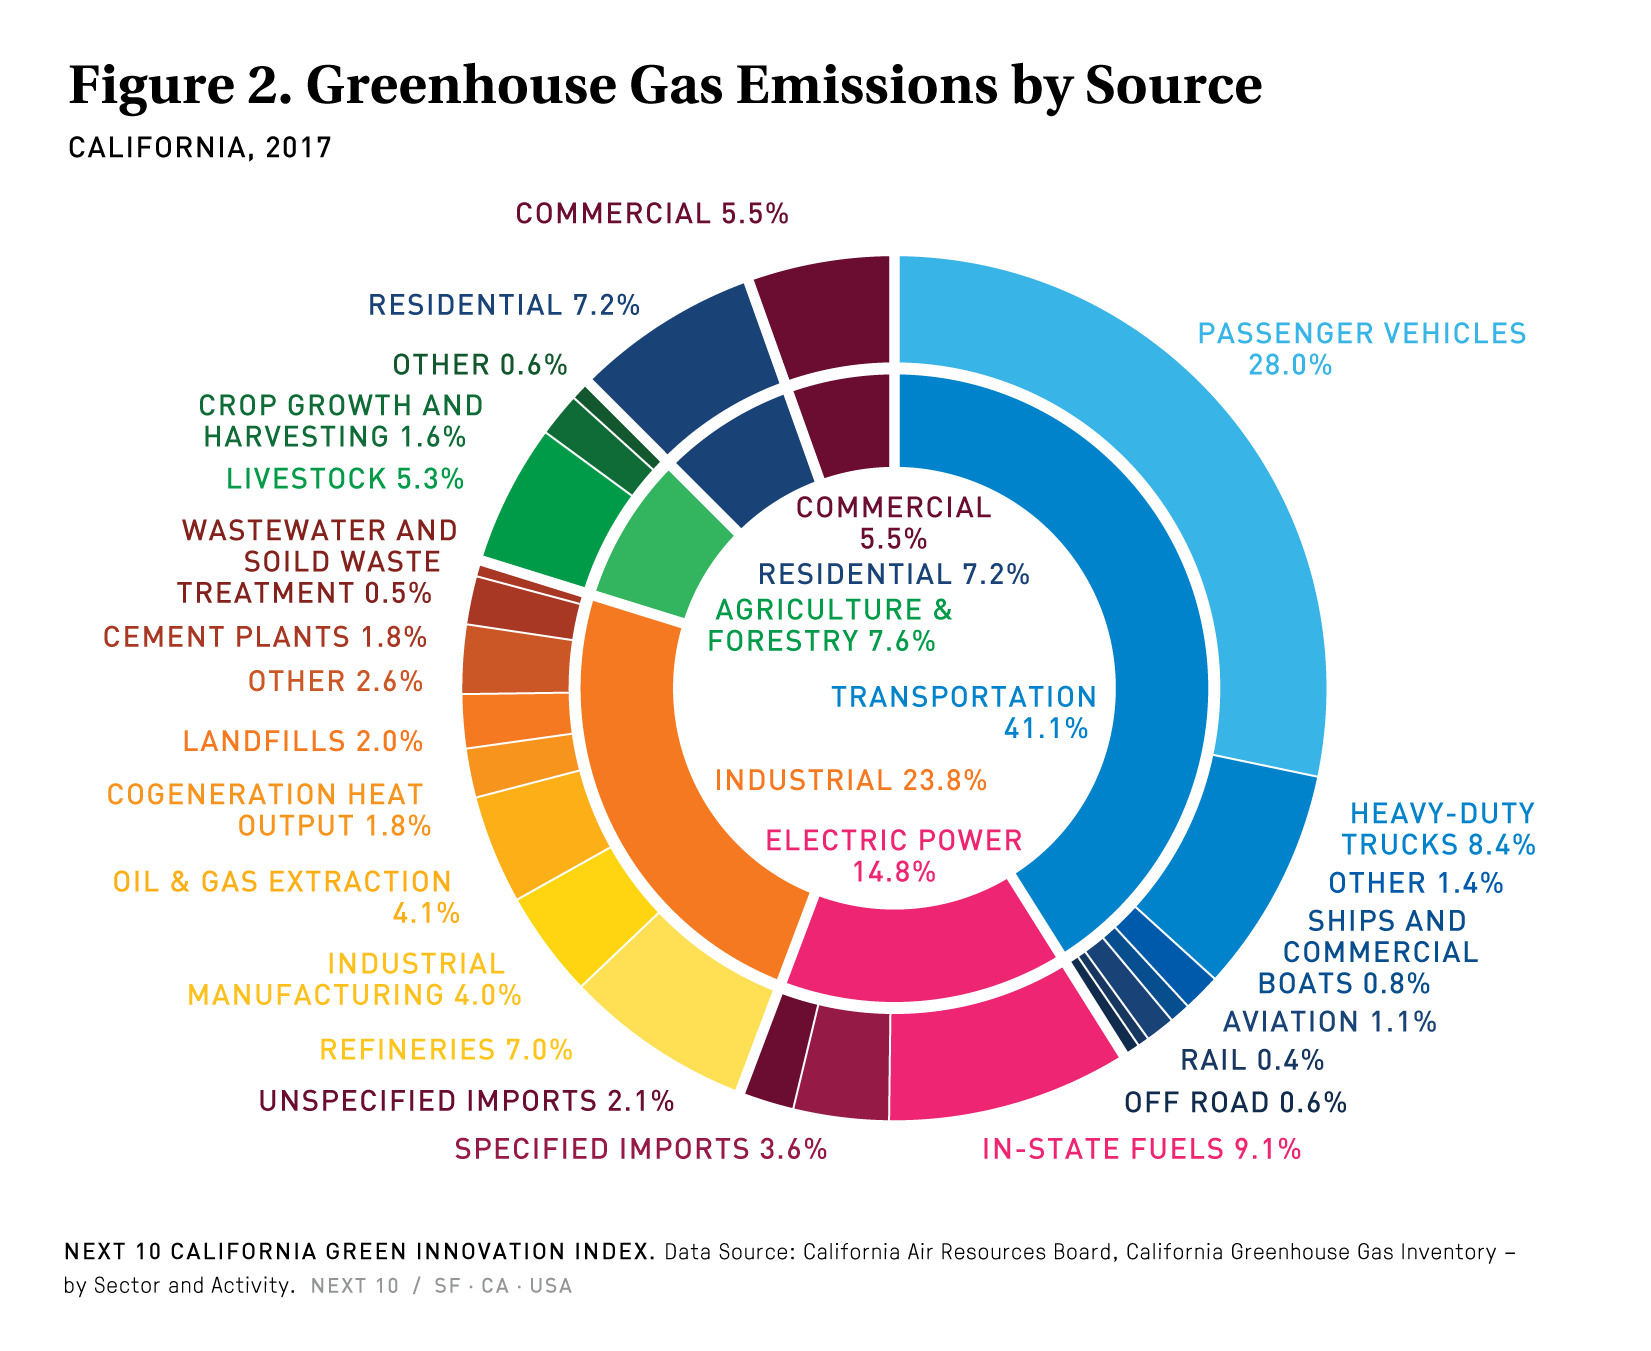 Figure 2. California Greenhouse Gas Emissions by Source